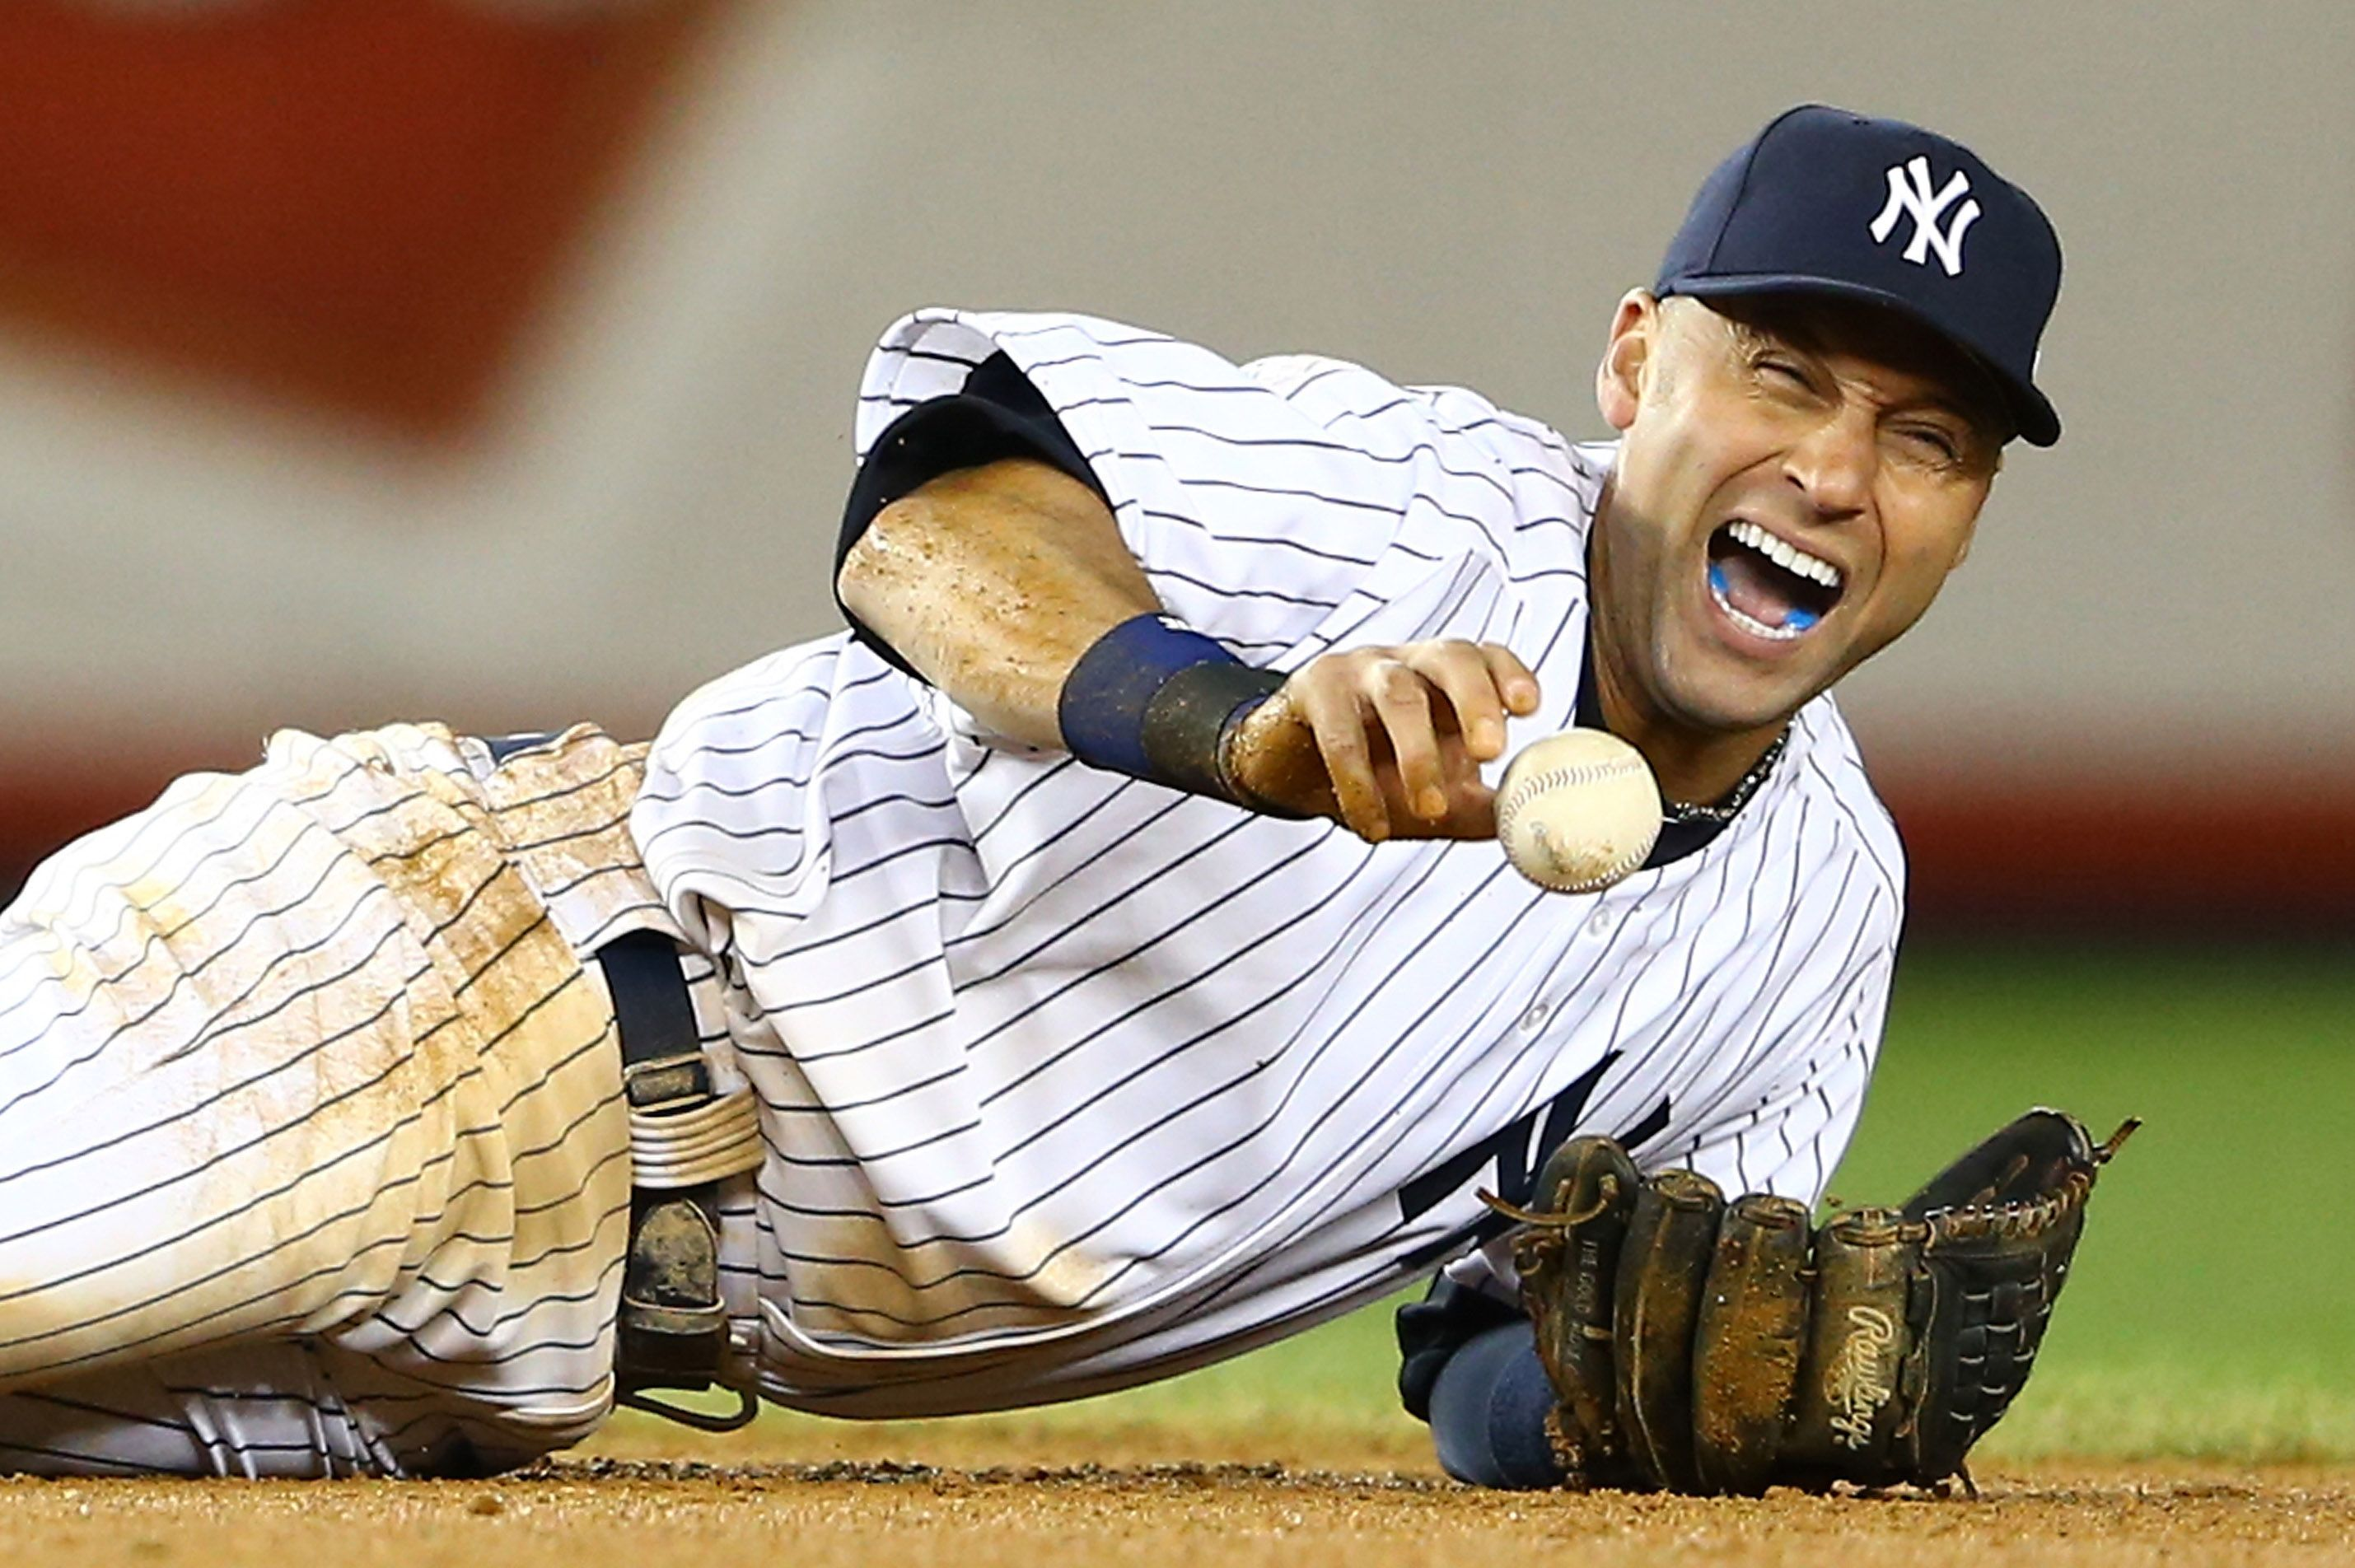 Top 5 Highest Paid Baseball Players in MLB Derek jeter